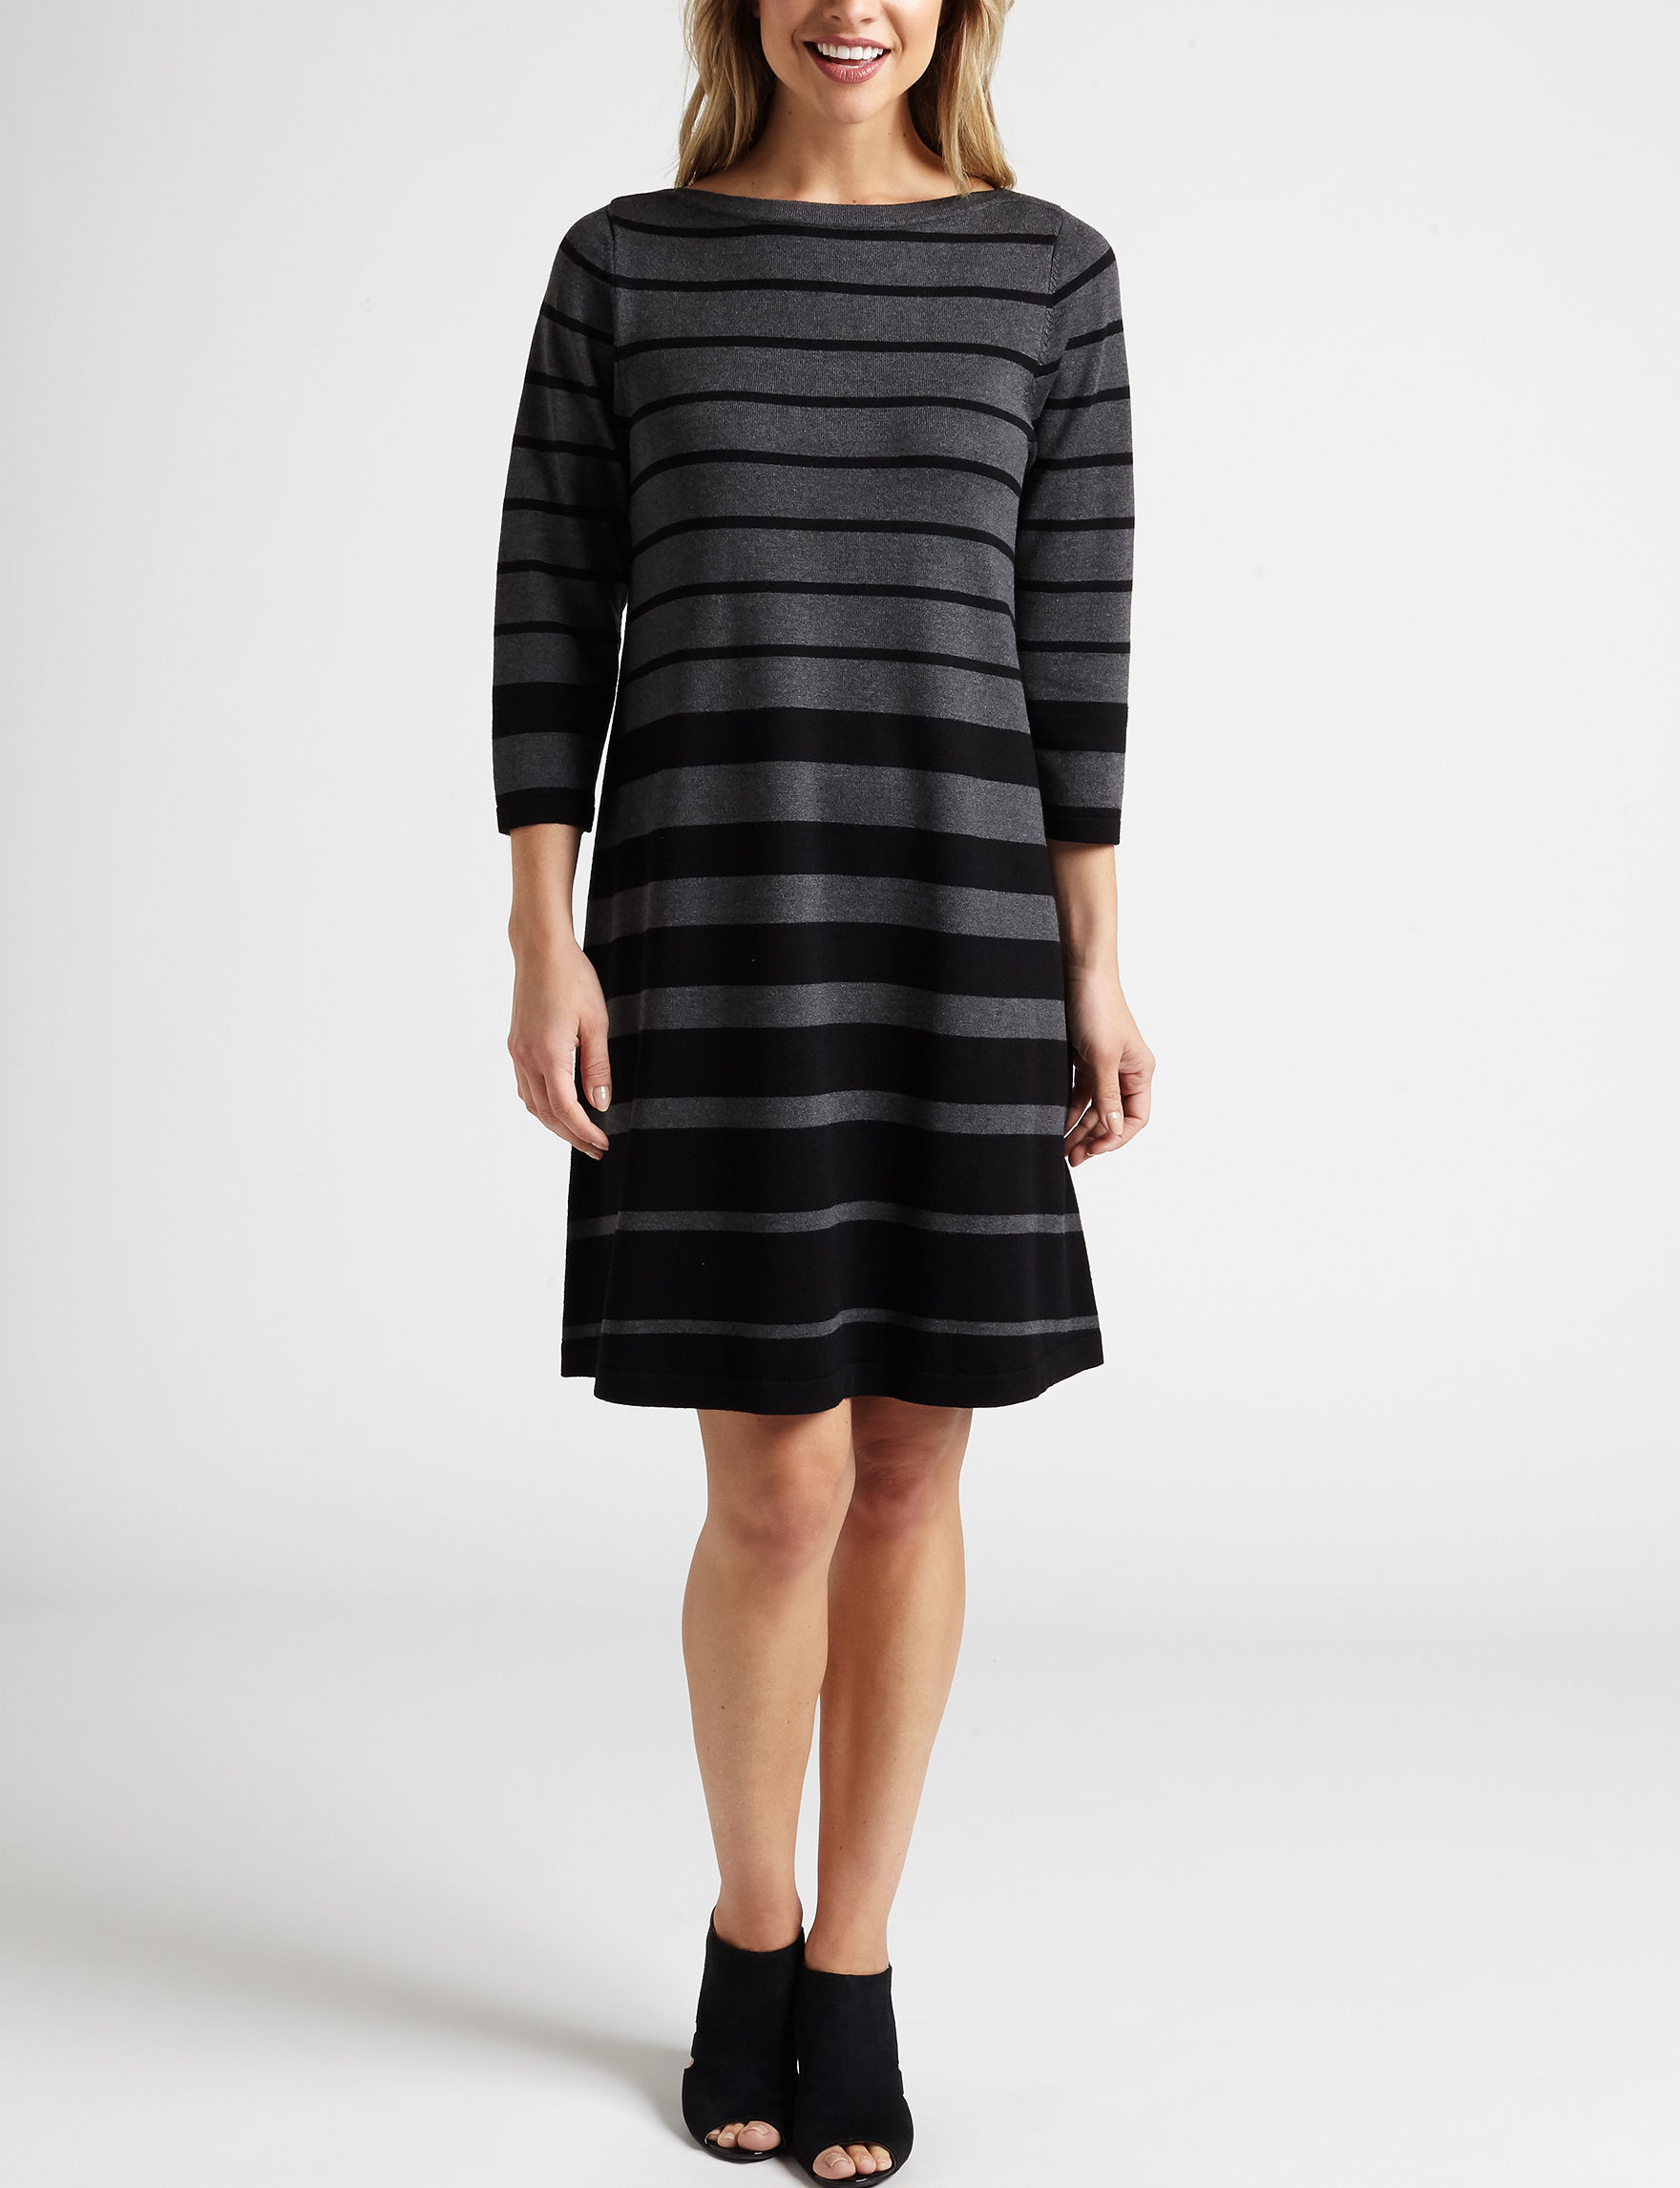 AGB Charcoal Everyday & Casual Sweater Dresses